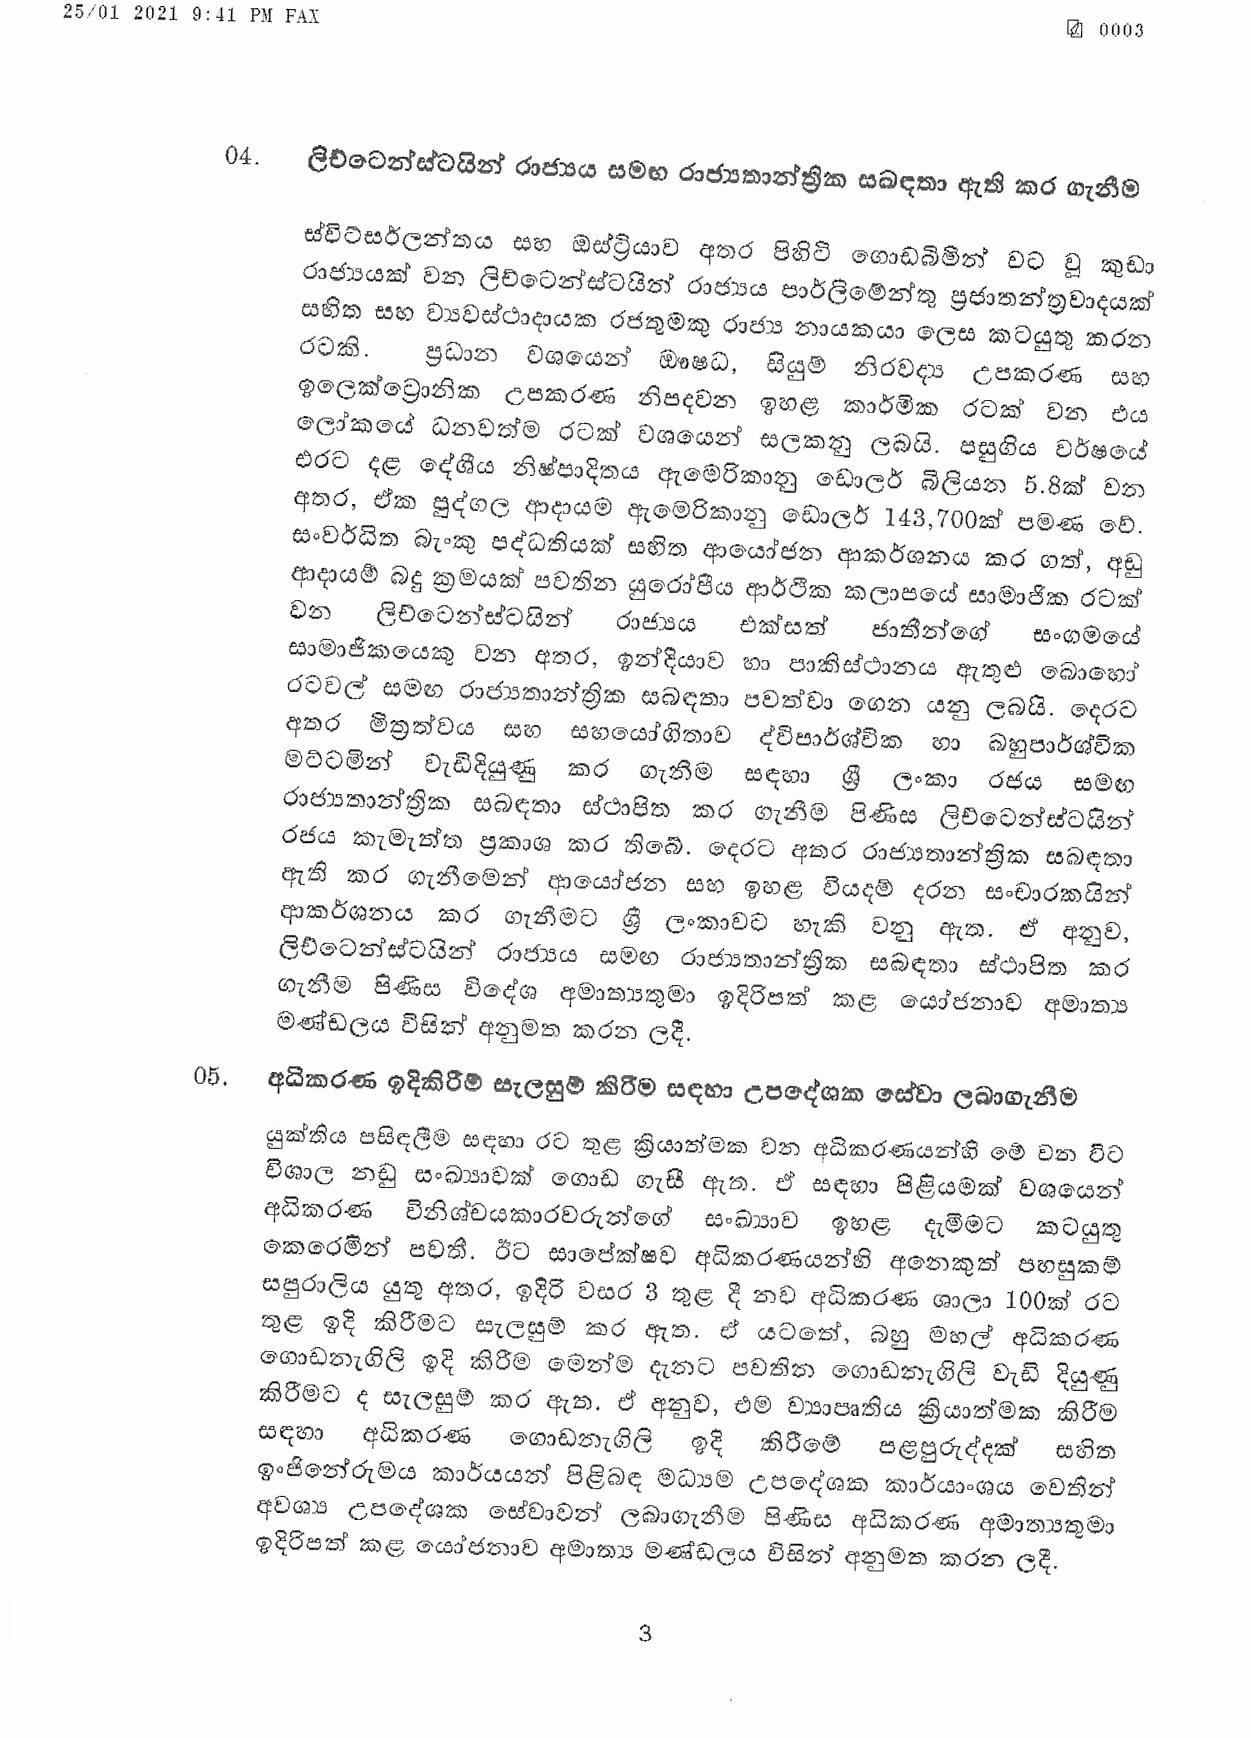 Cabinet Decision on 25.01.2021 page 003